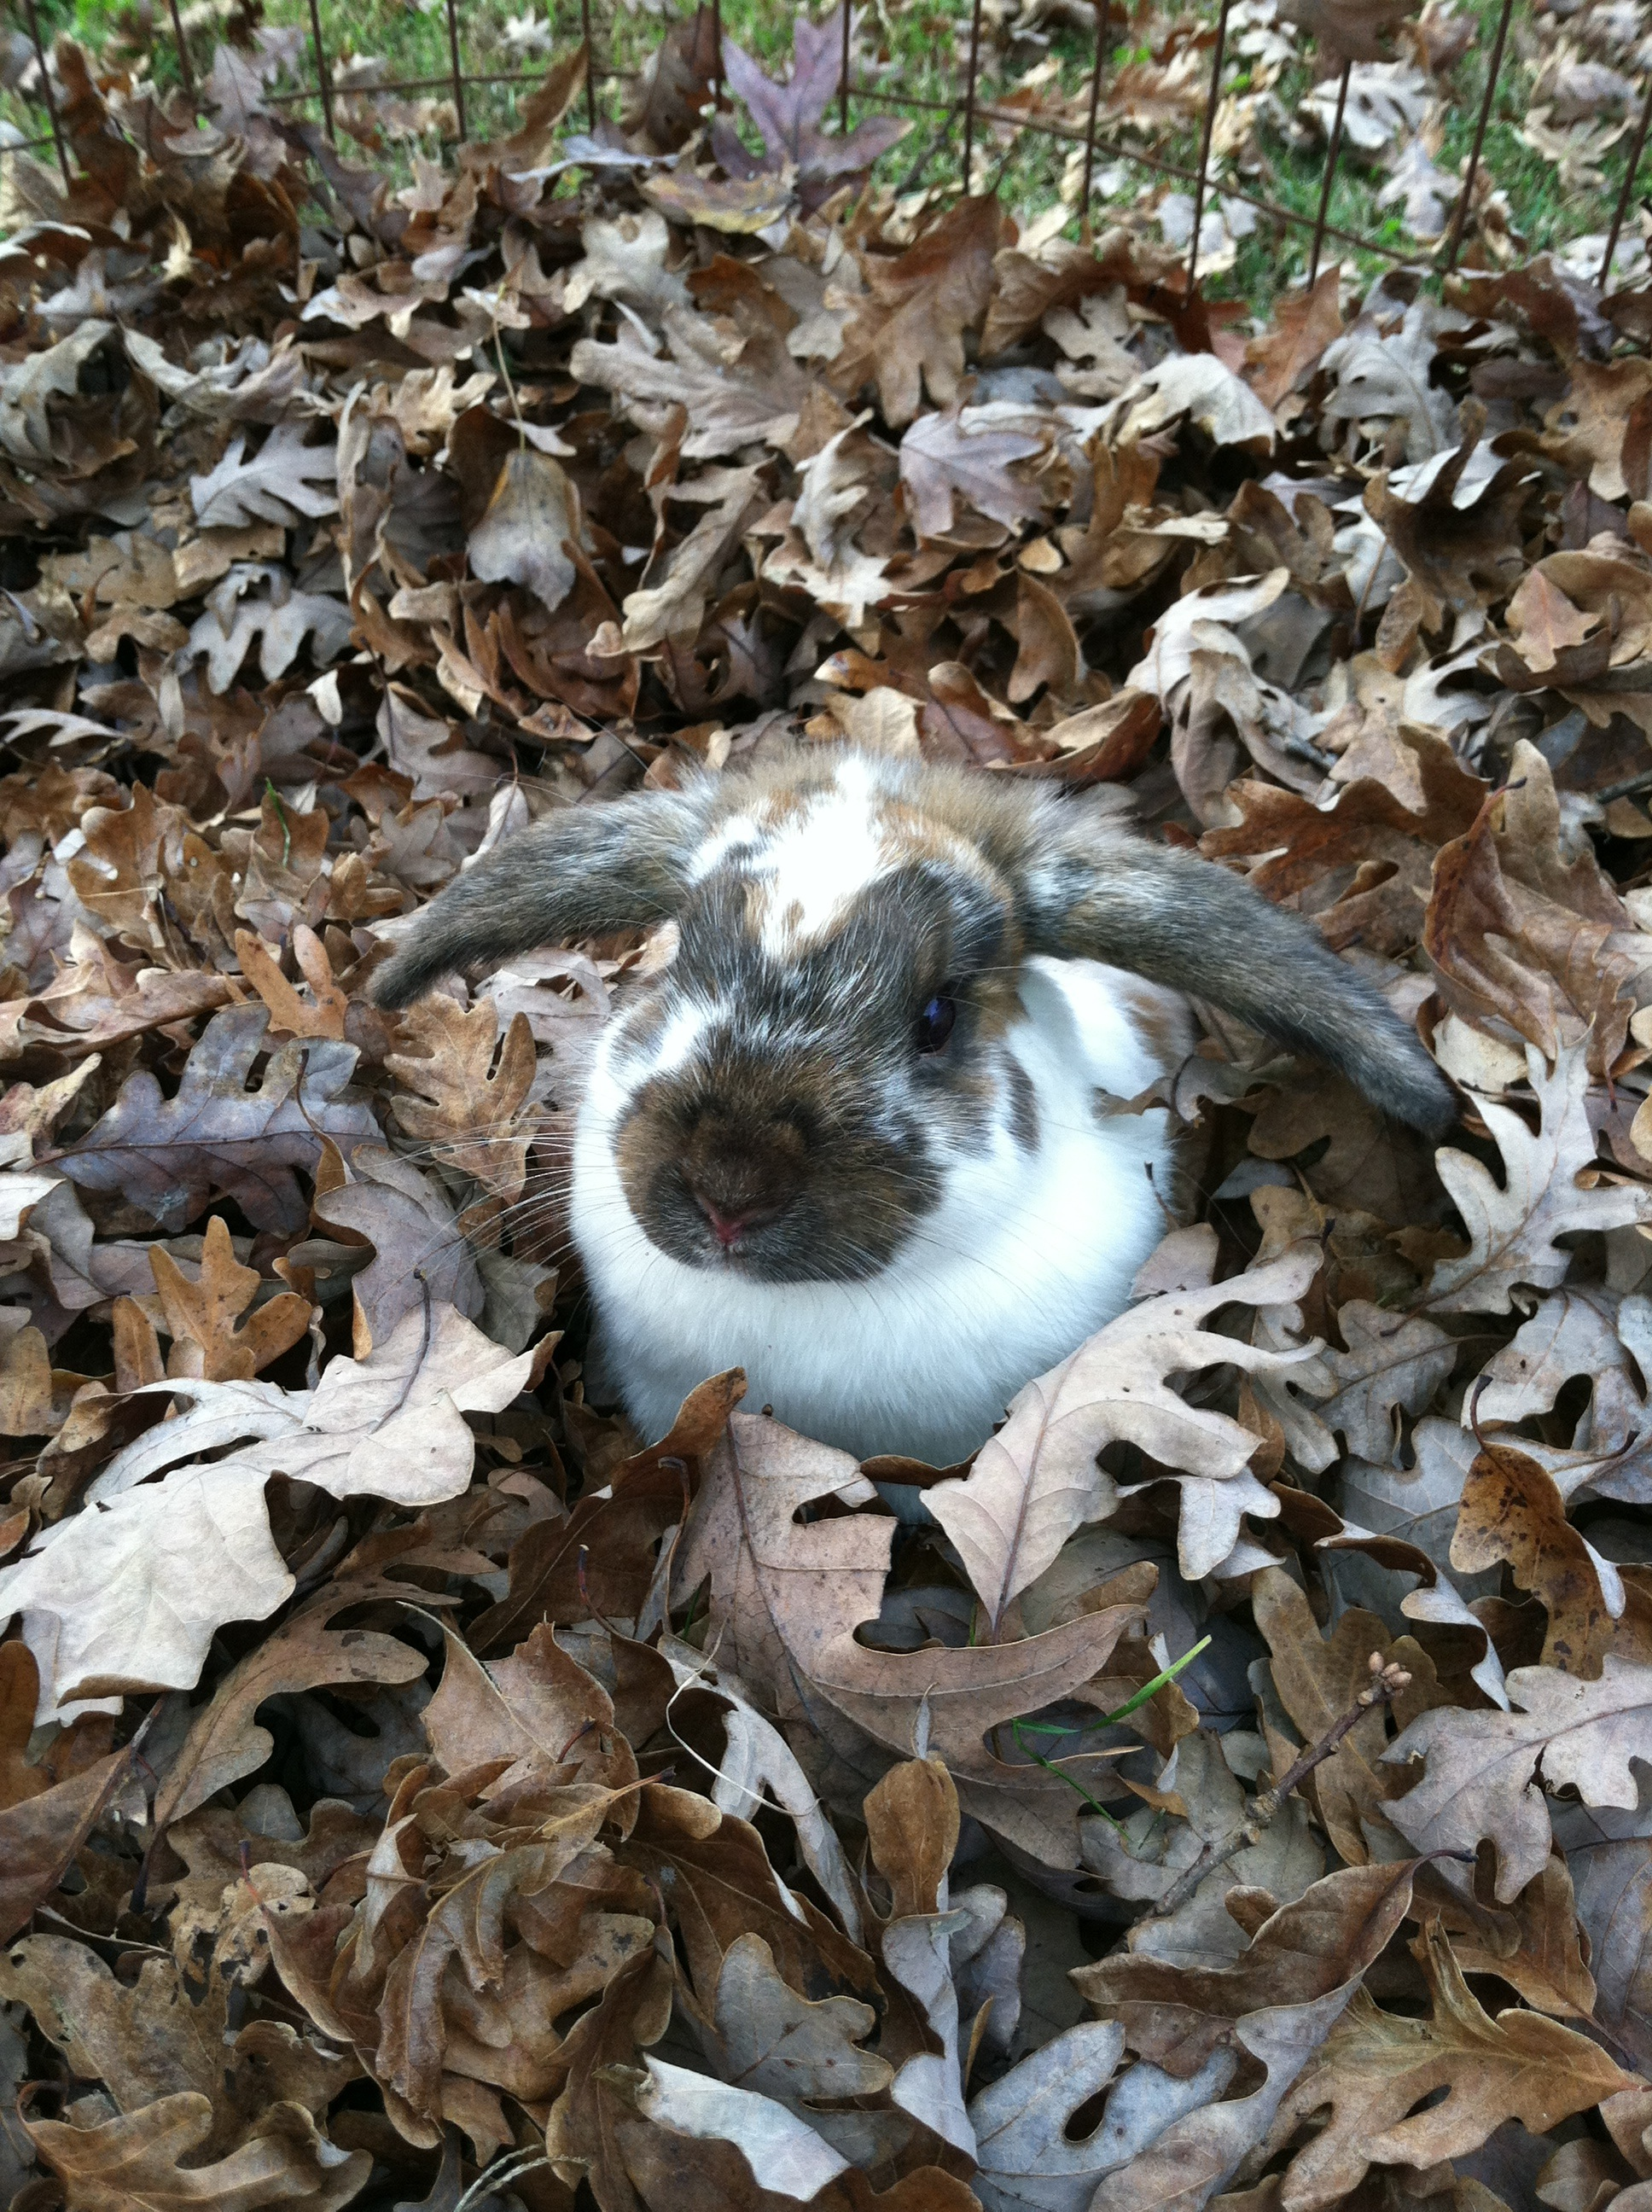 Bunny Plays in a Pile of Crunchy Leaves